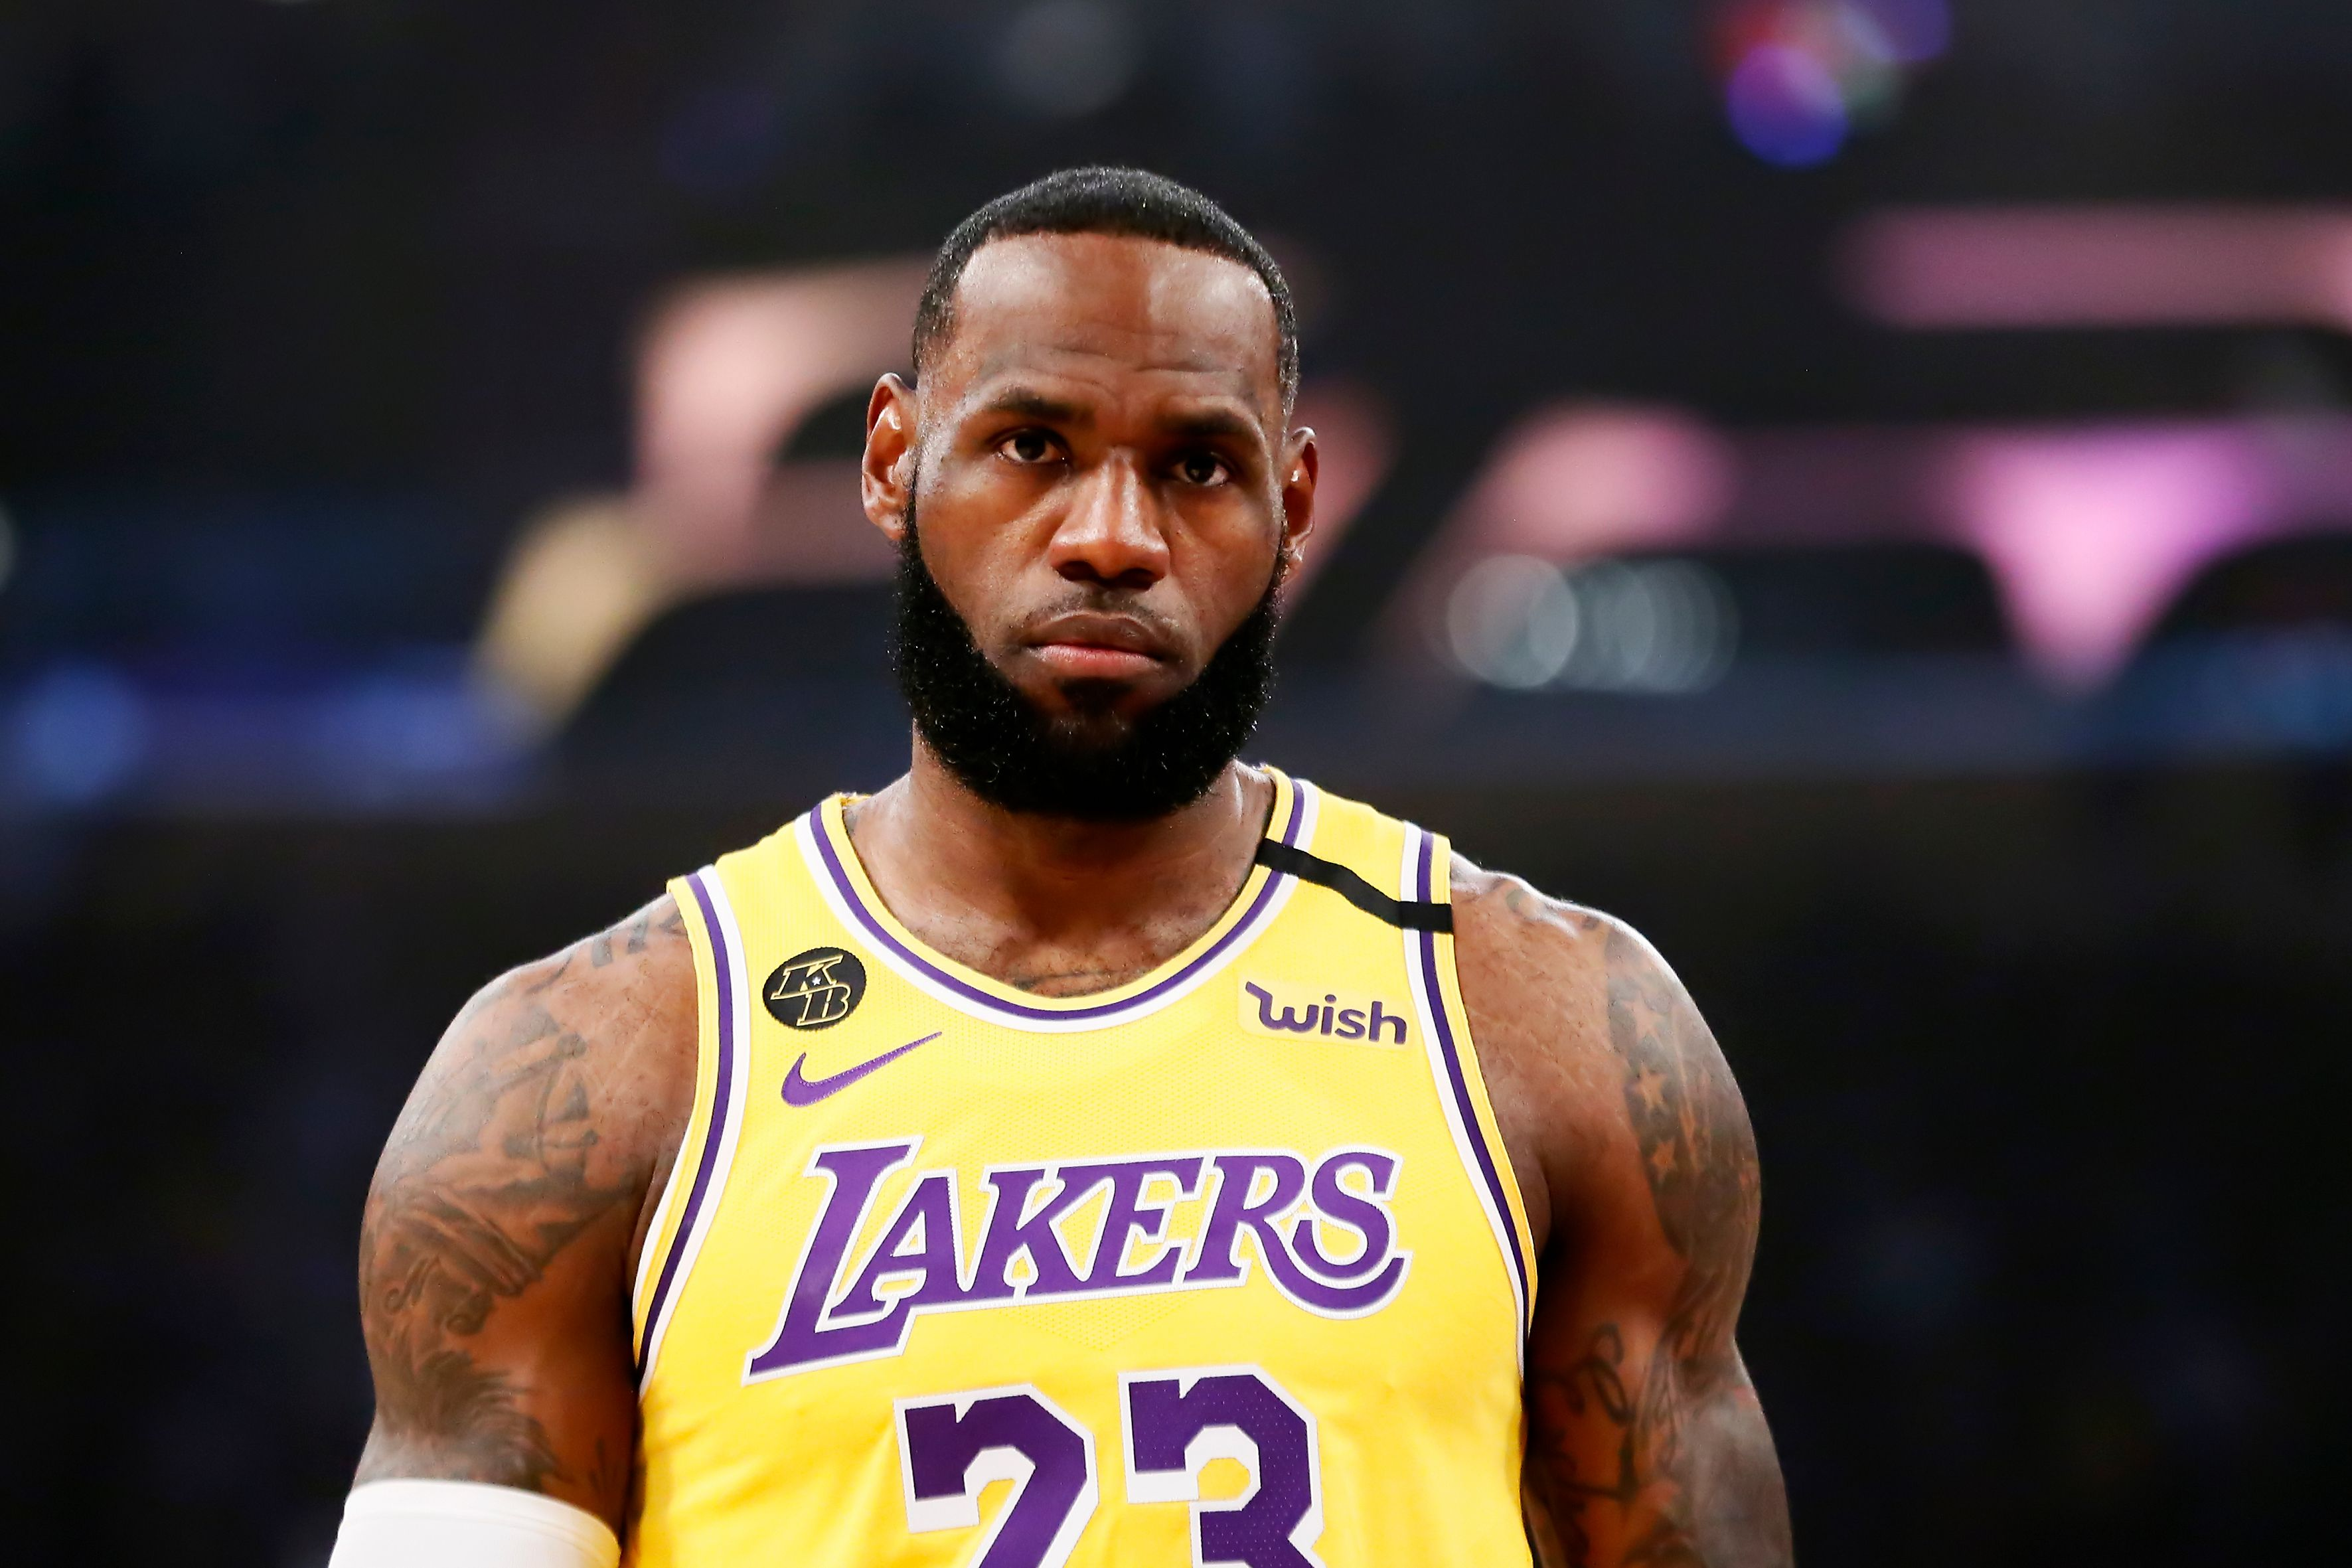 LeBron James #23 of the Los Angeles Lakers looks on during a game against the Brooklyn Nets at the Staples Center on March 10, 2020 in Los Angeles, CA. | Source: Getty Images